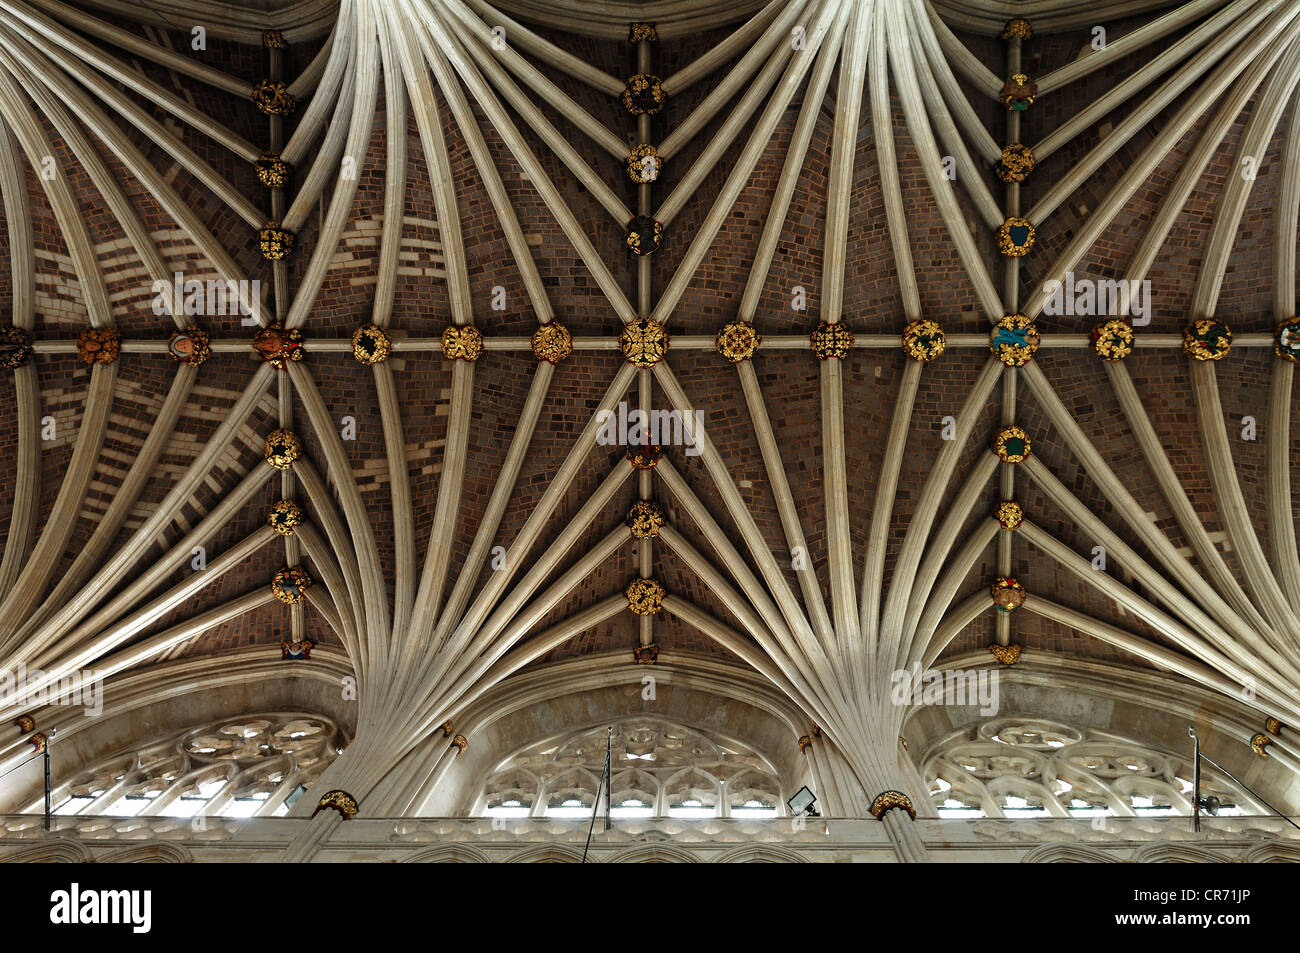 Gothic vault of Exeter Cathedral, 13th Century, side view, Exeter, Devon, England, United Kingdom, Europe - Stock Image